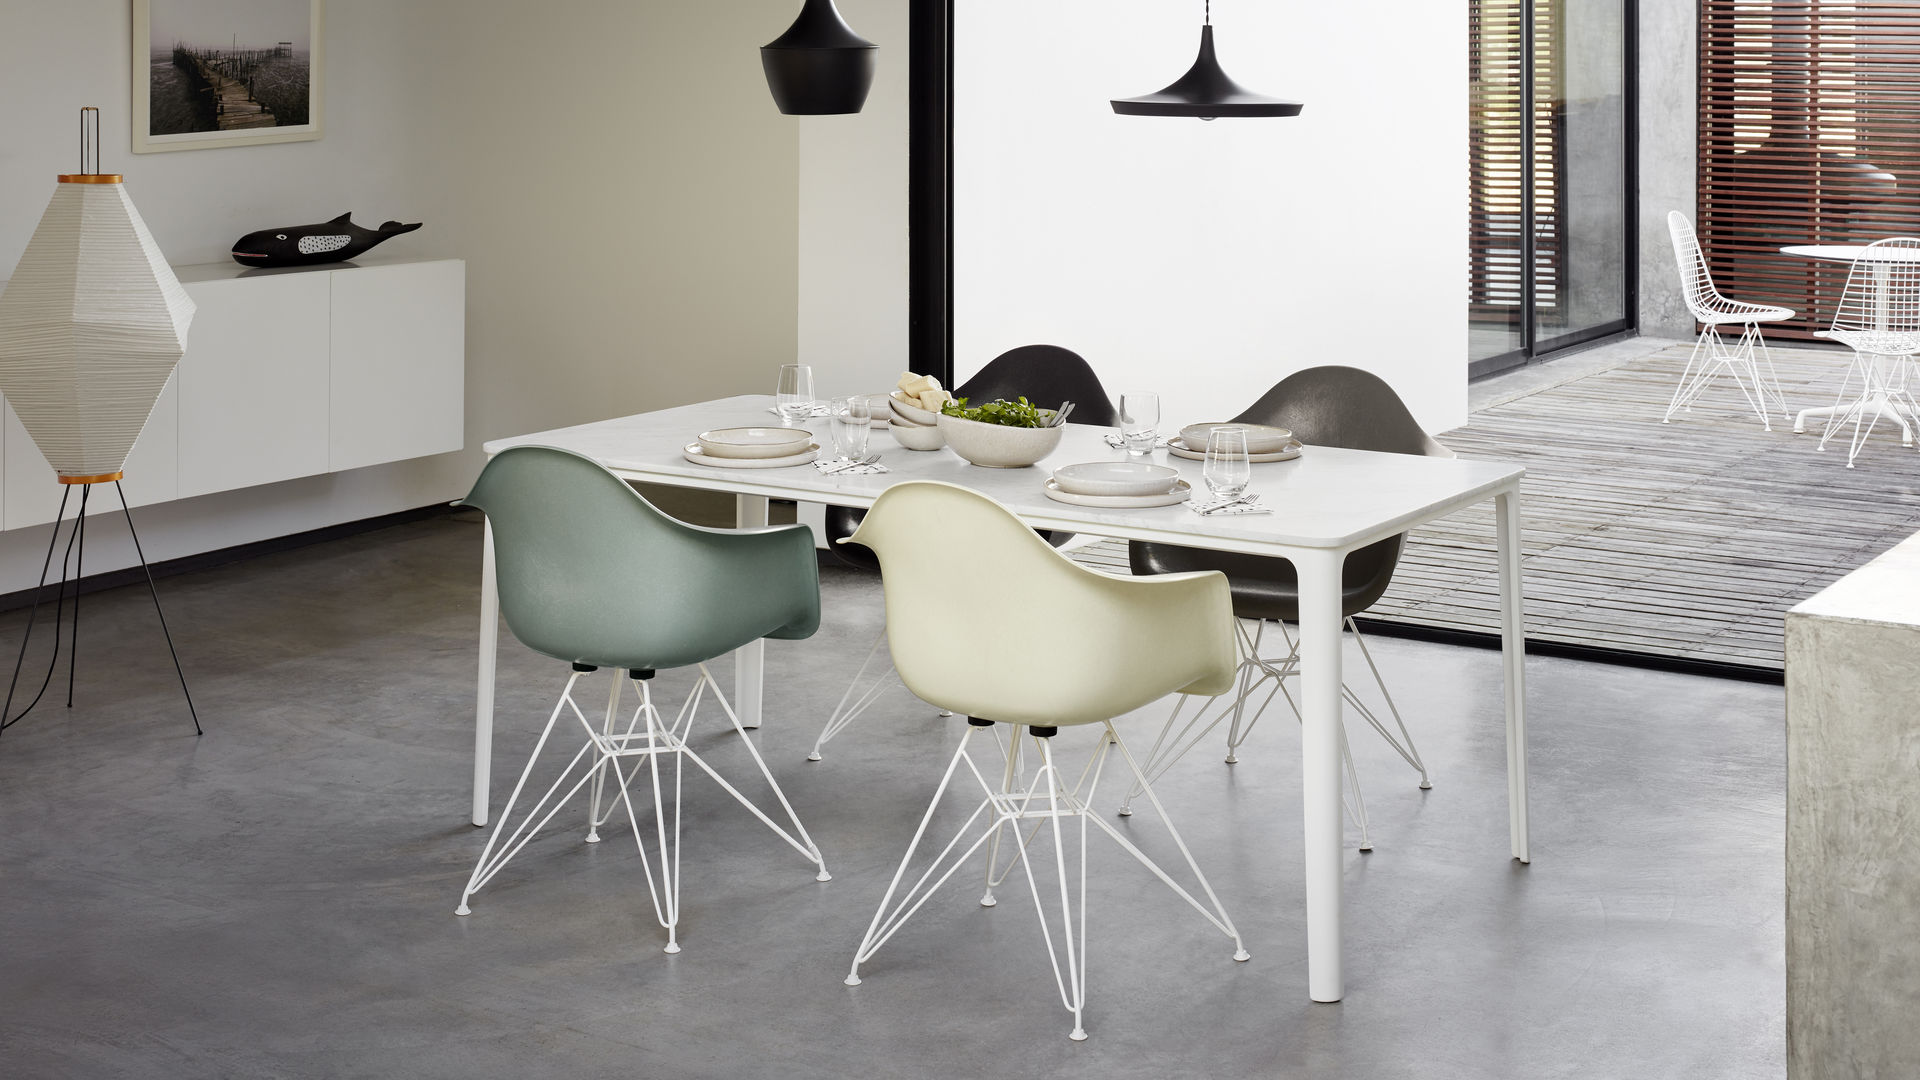 Eames Fiberglass Armchair DAR Eames House Whale Plate Dining Table Akari 13A Wire Chair_web_16-9